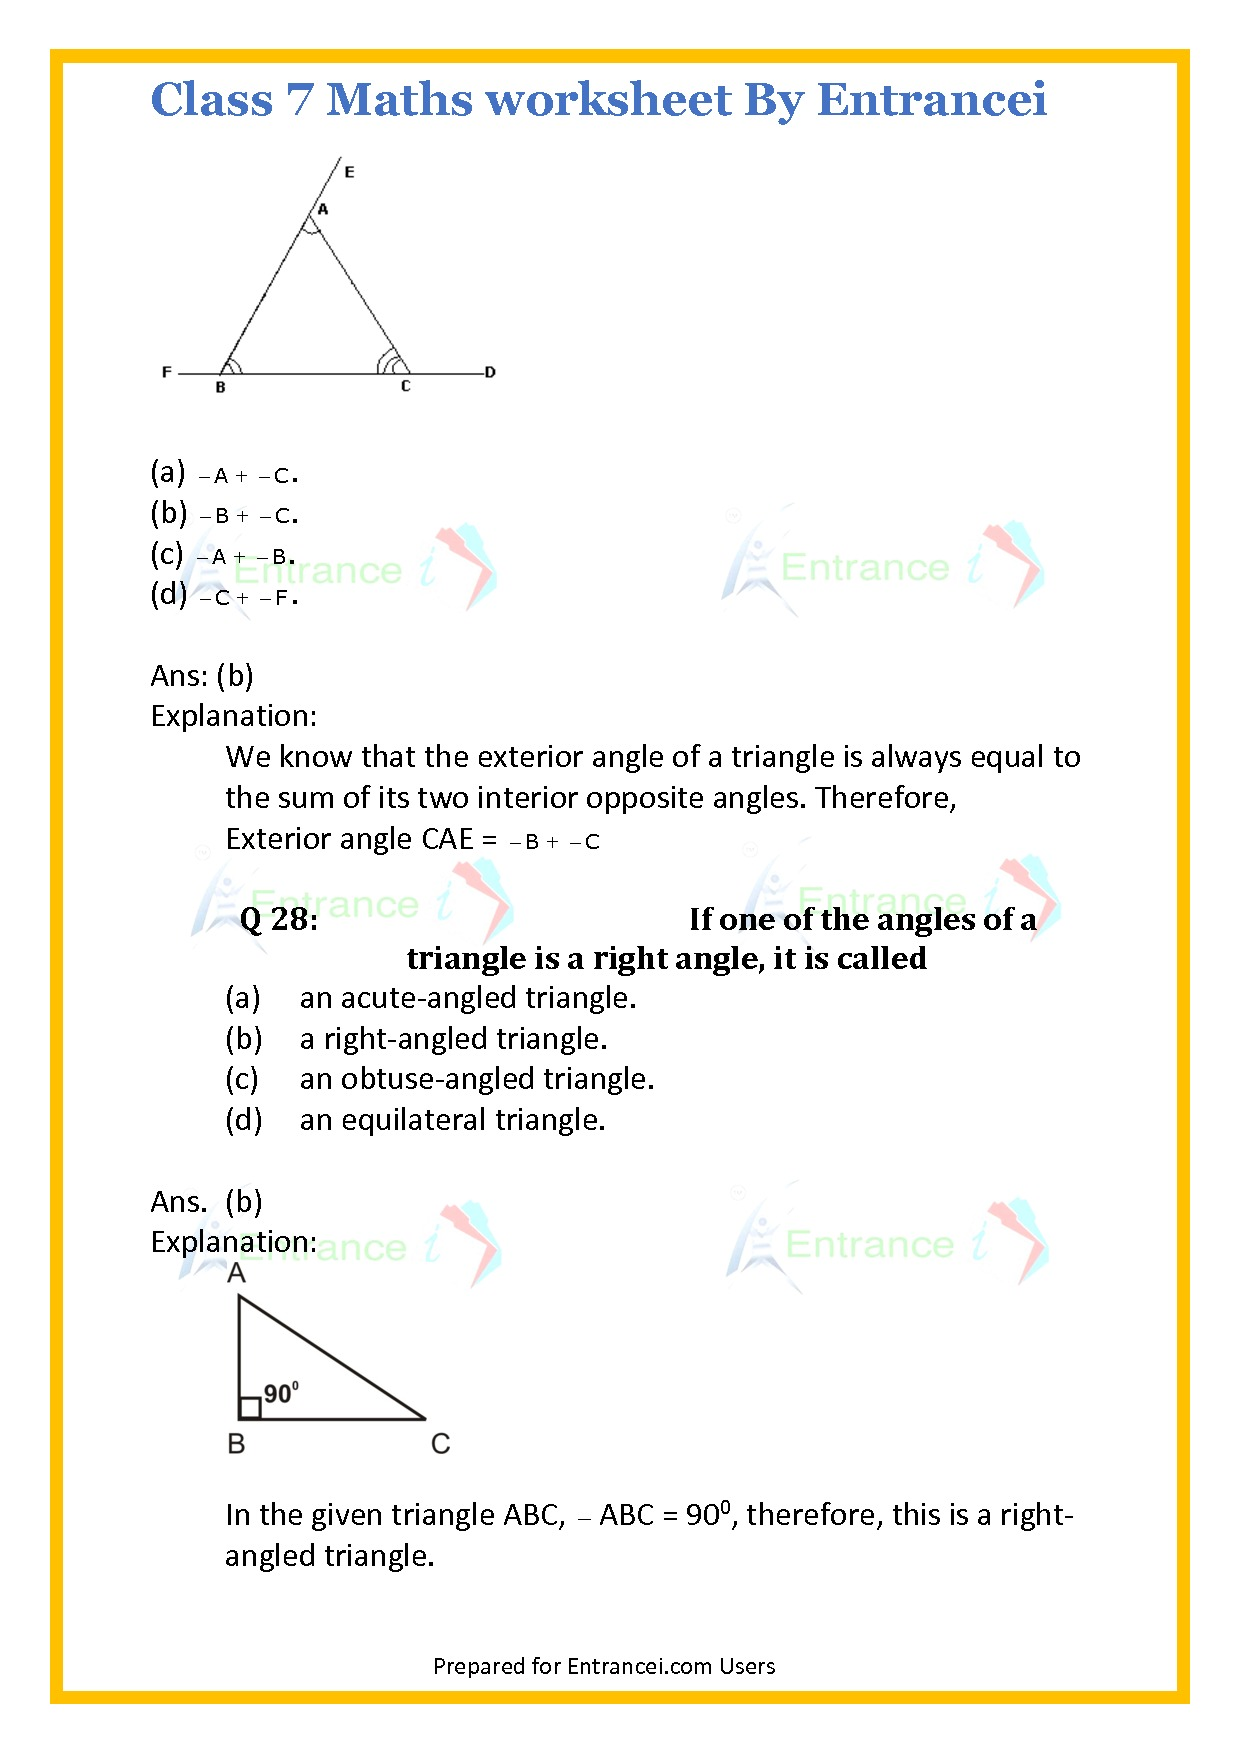 Cbse Class 7 Maths Worksheet For Chapter 6 Triangle And